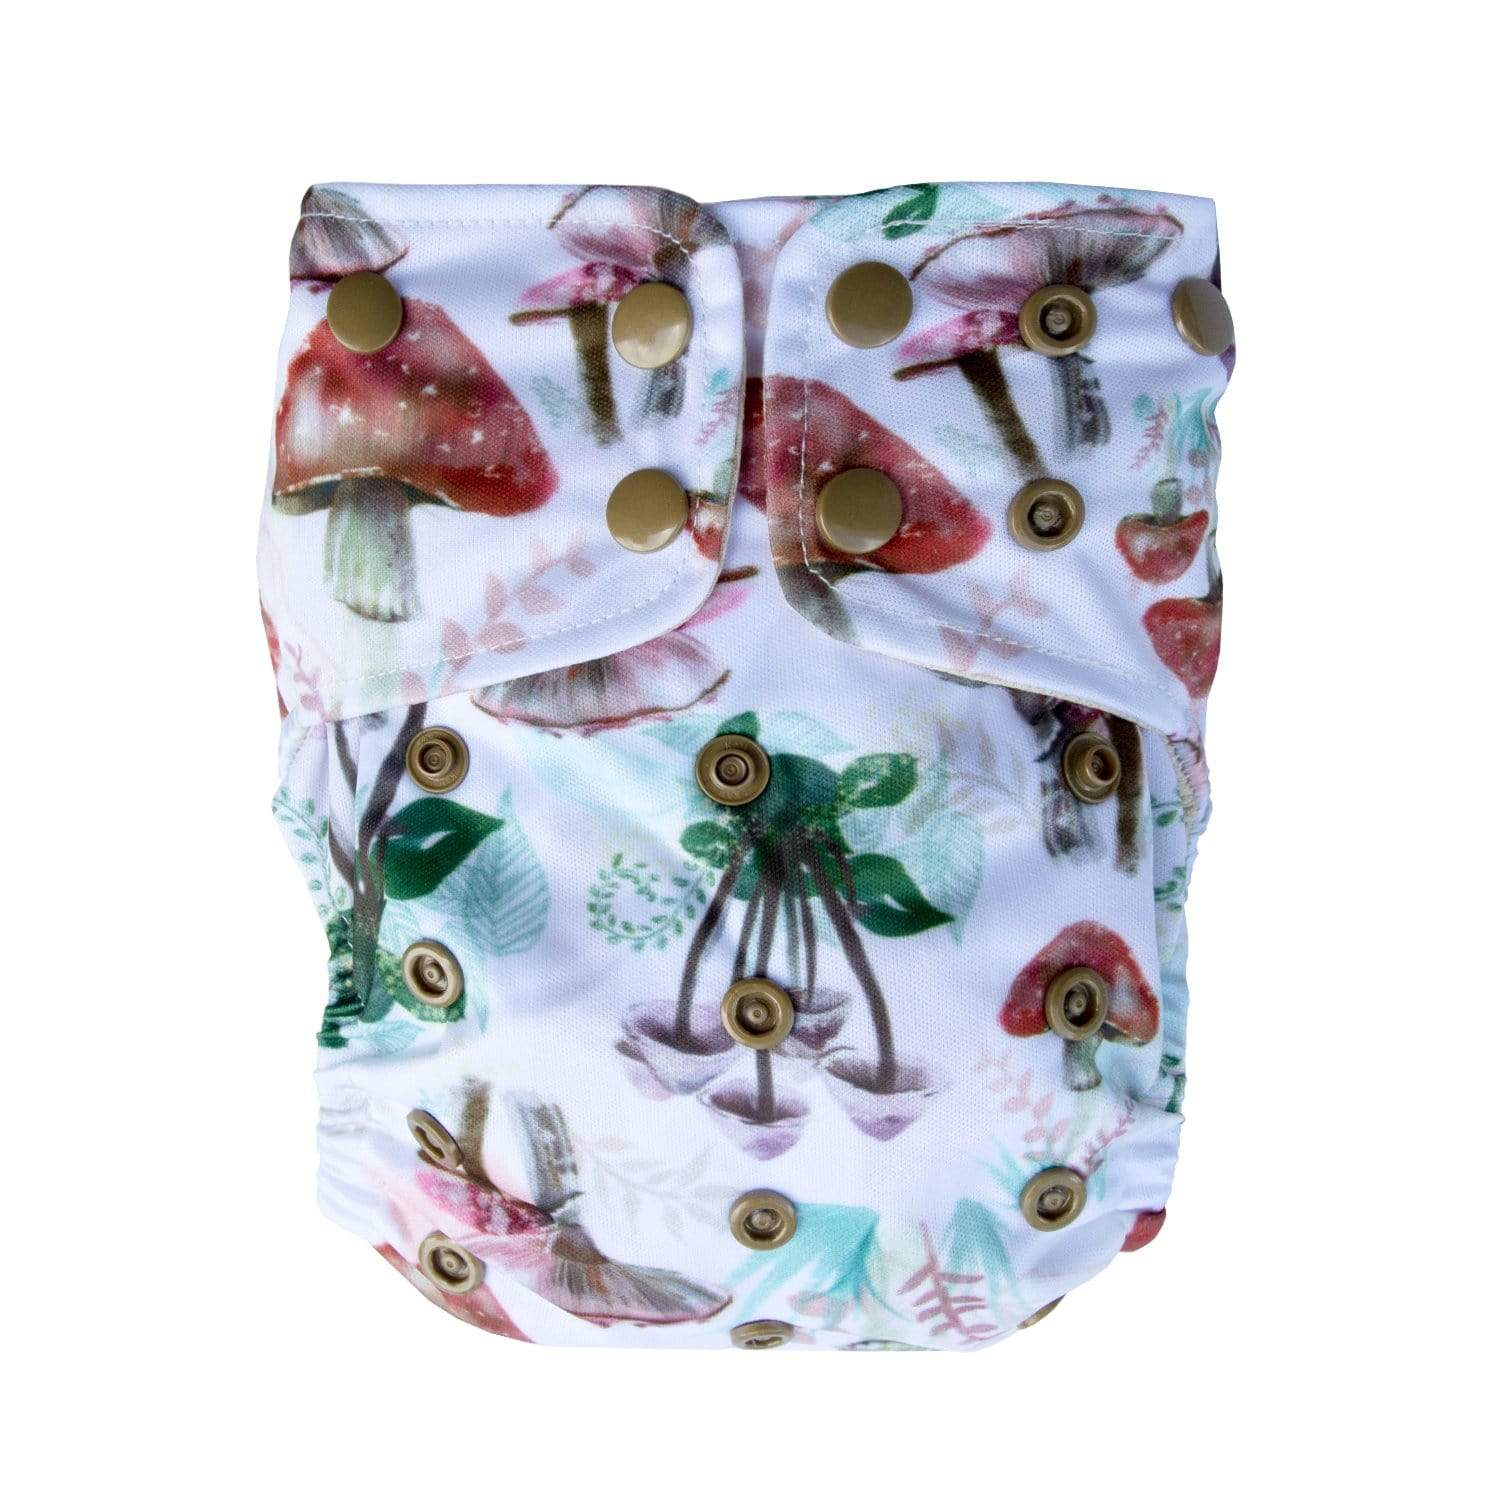 Lighthouse Kid's Company Supreme All In One Diaper - Toadstool